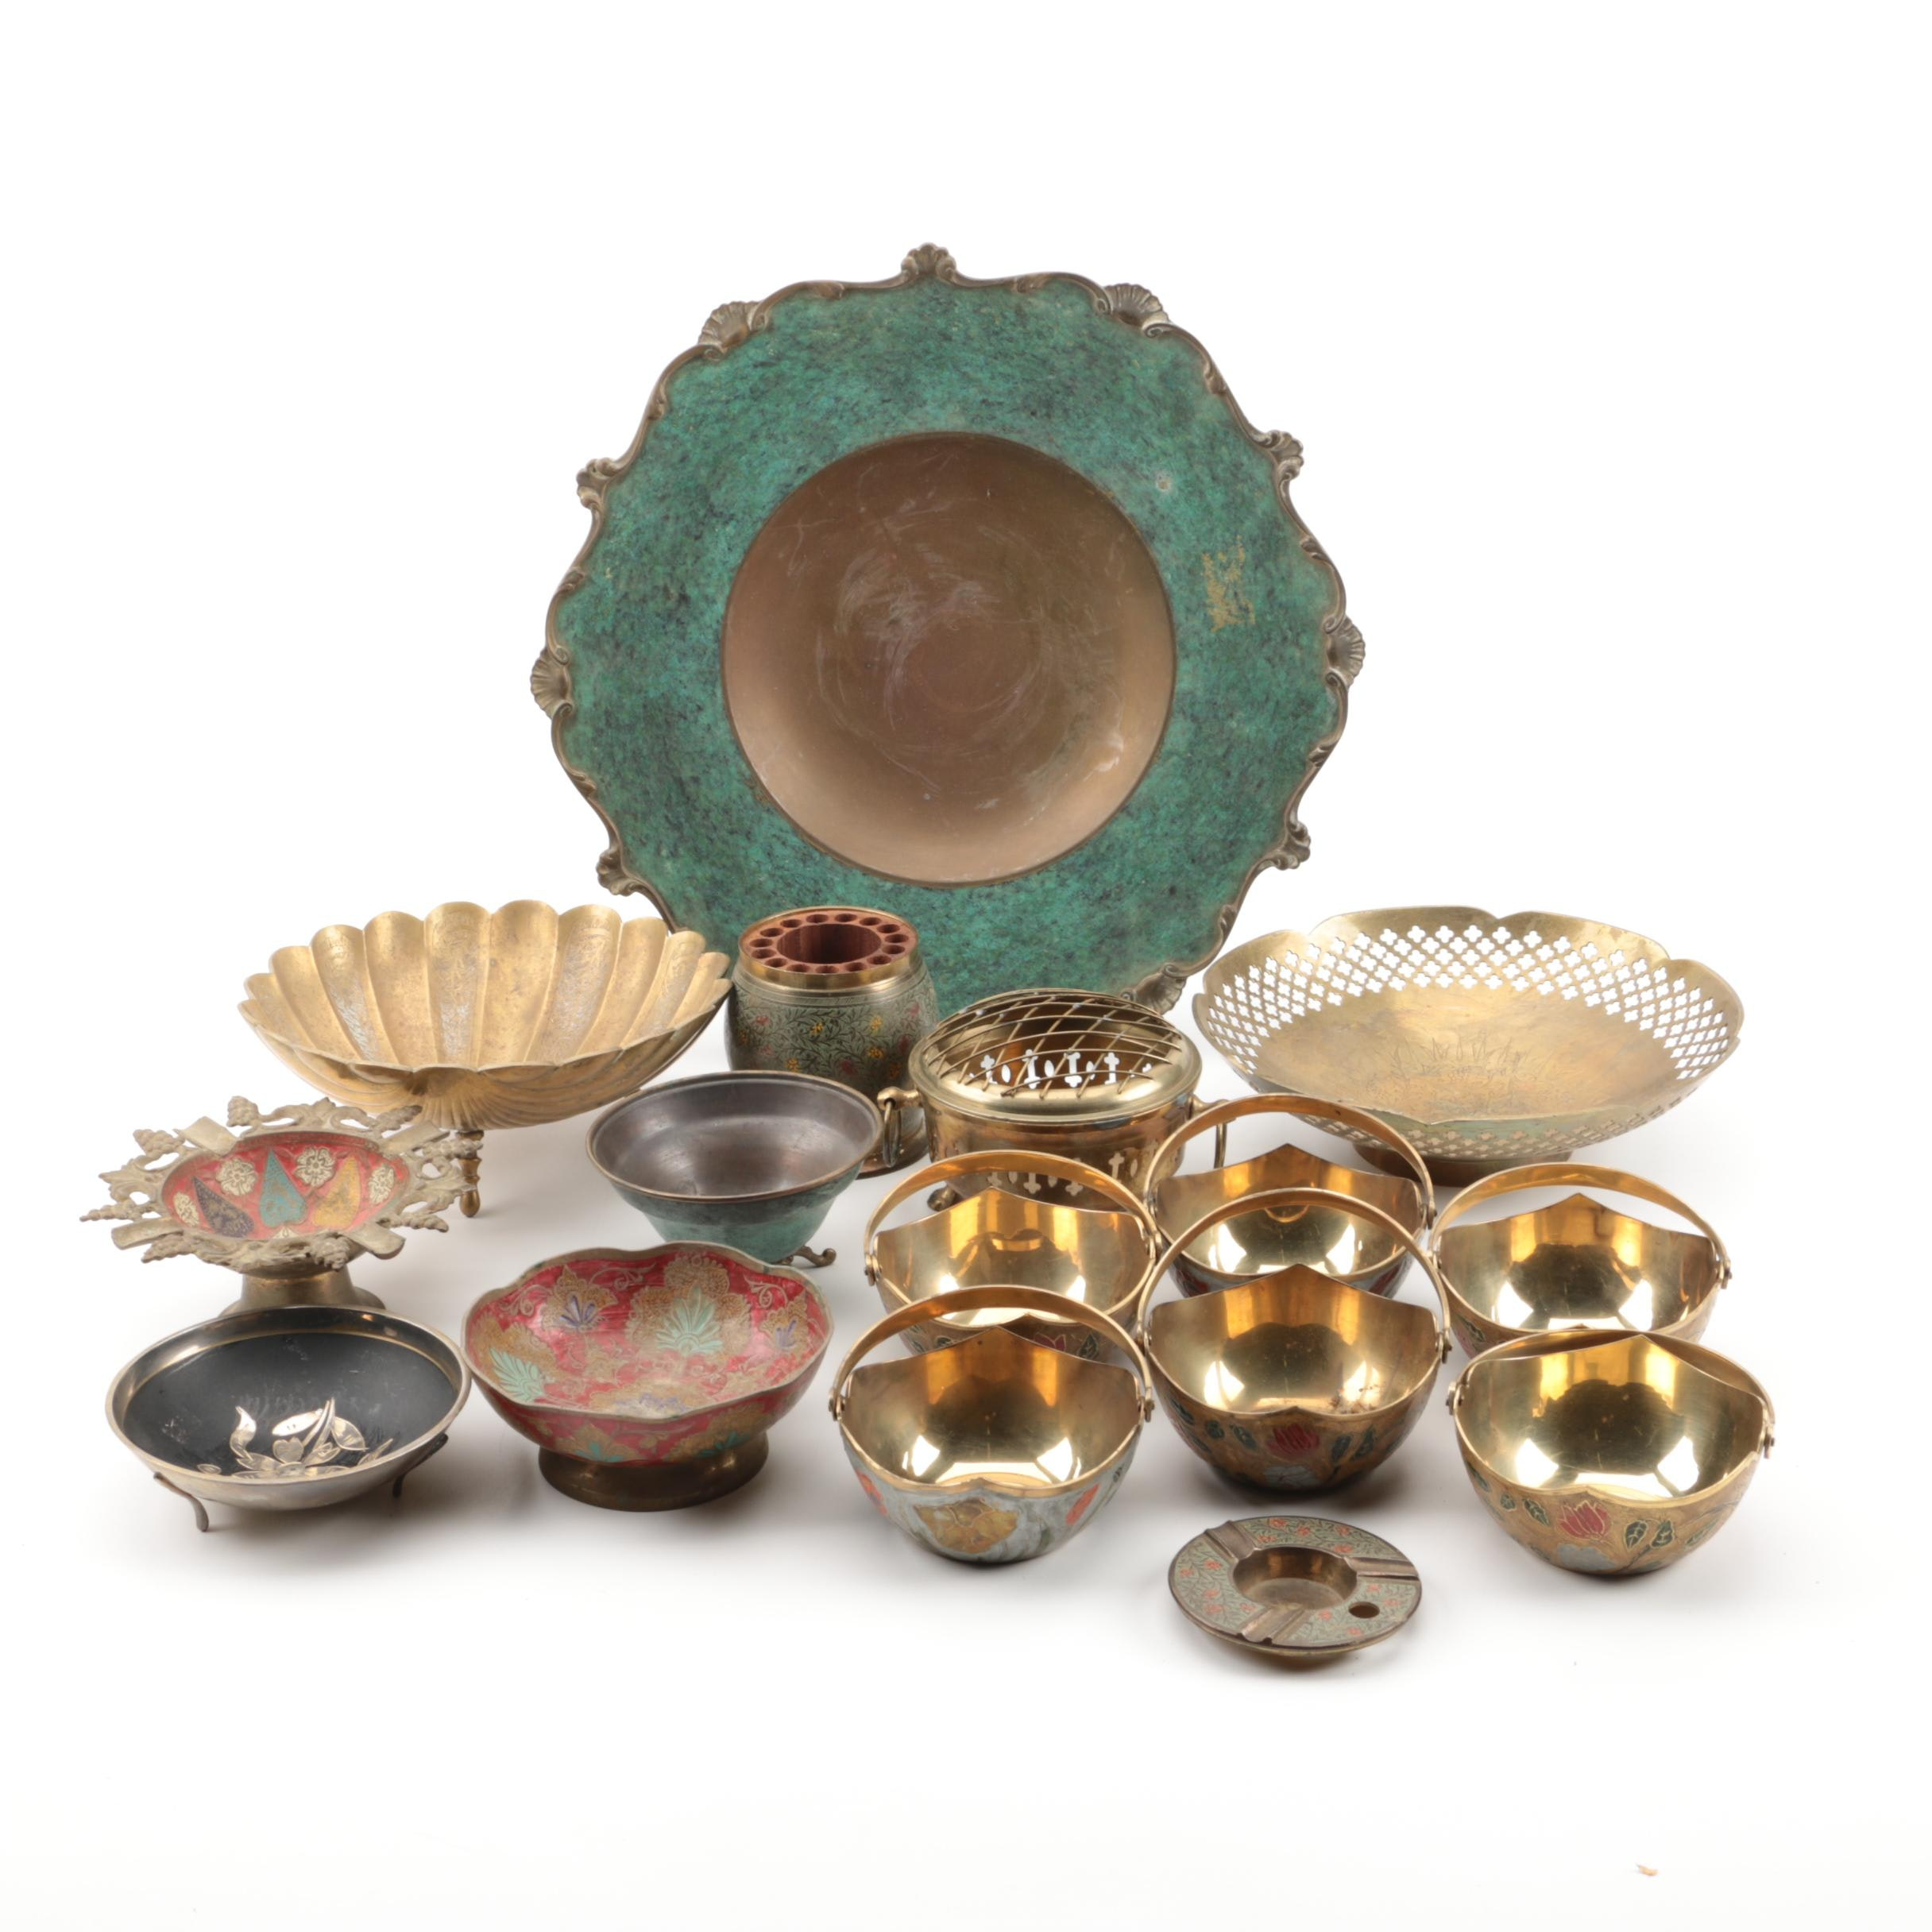 Collection of Decorative Metal Ware